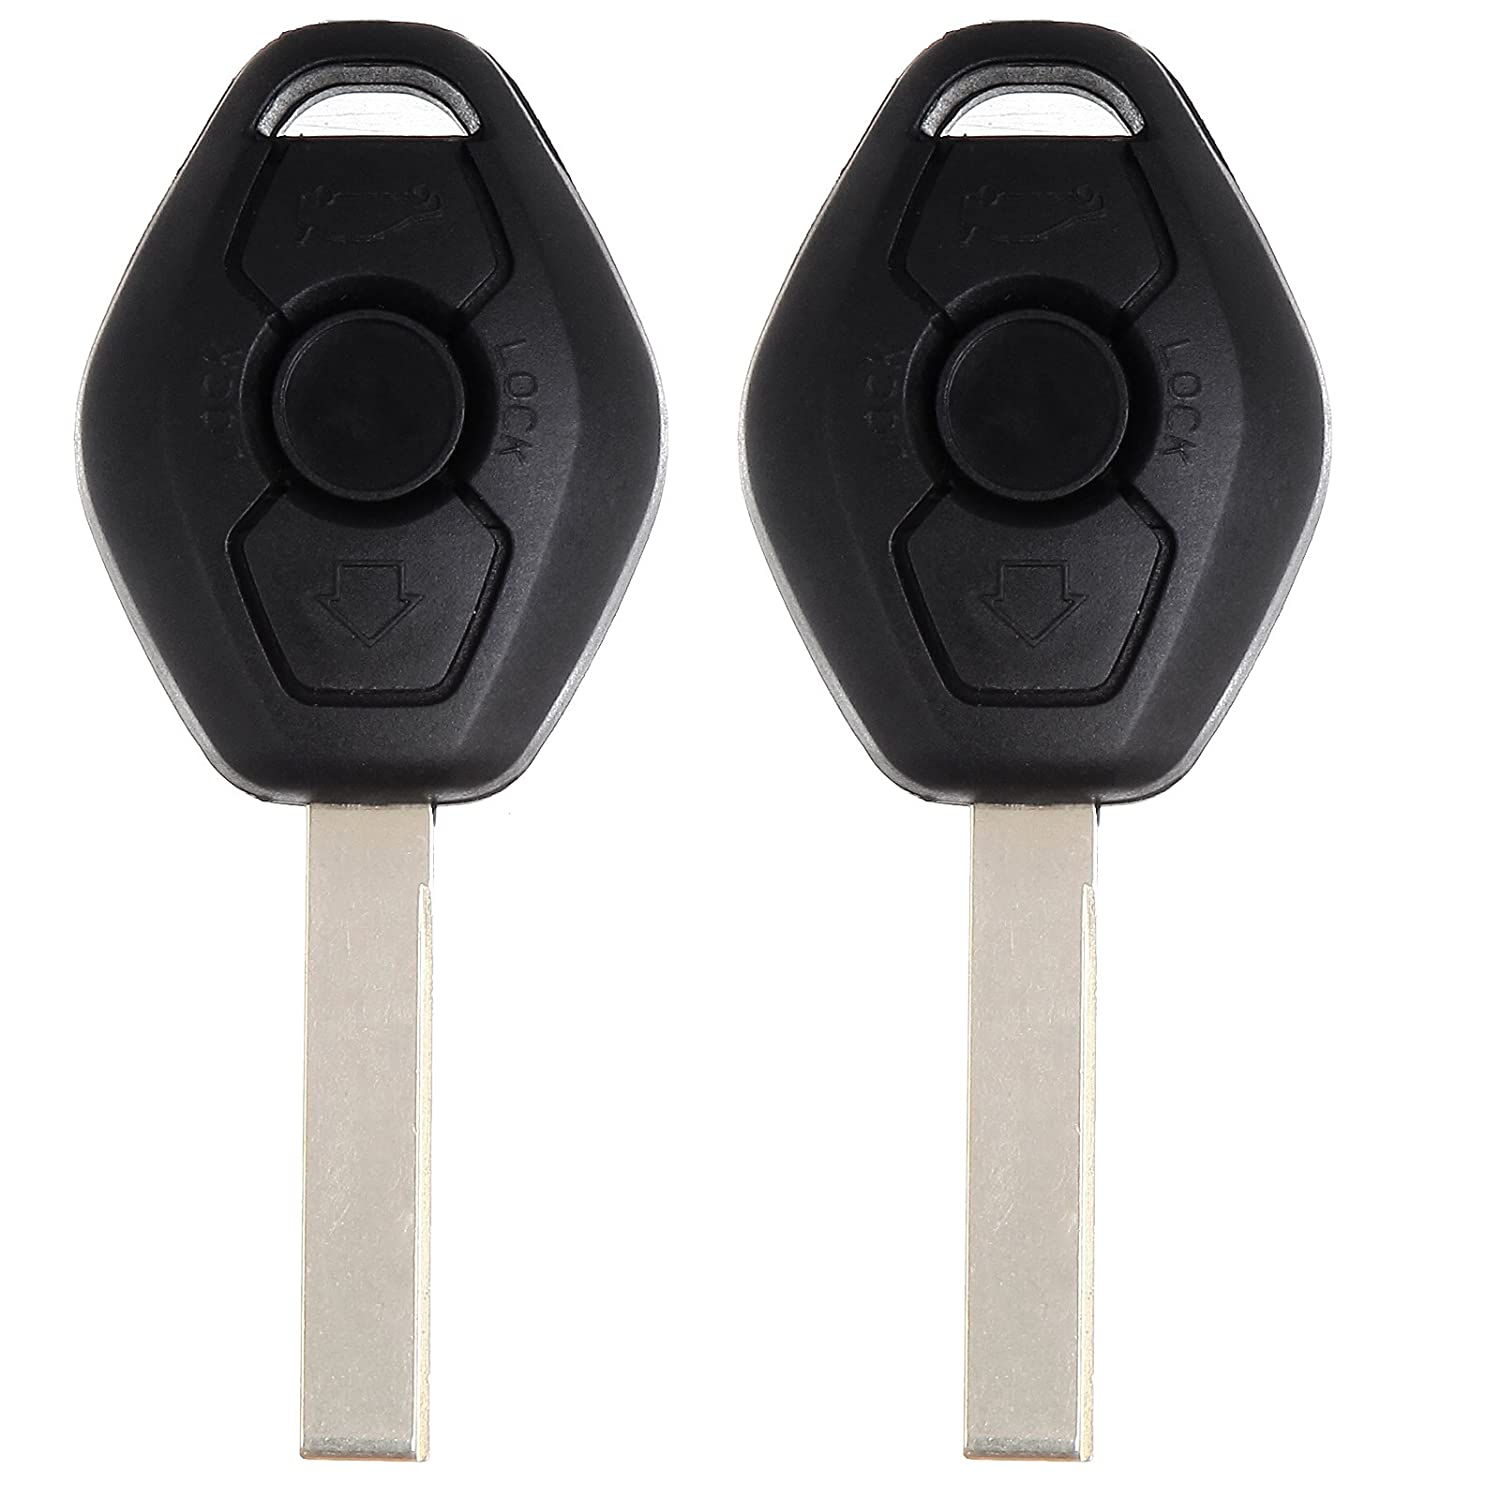 SCITOO Compatible with Replacement Key Key Fob fit BMW E38 E46 E60 E61 E36 E85 E86 E83 X3 3 Buttons Remote Key 315MHz 6955750